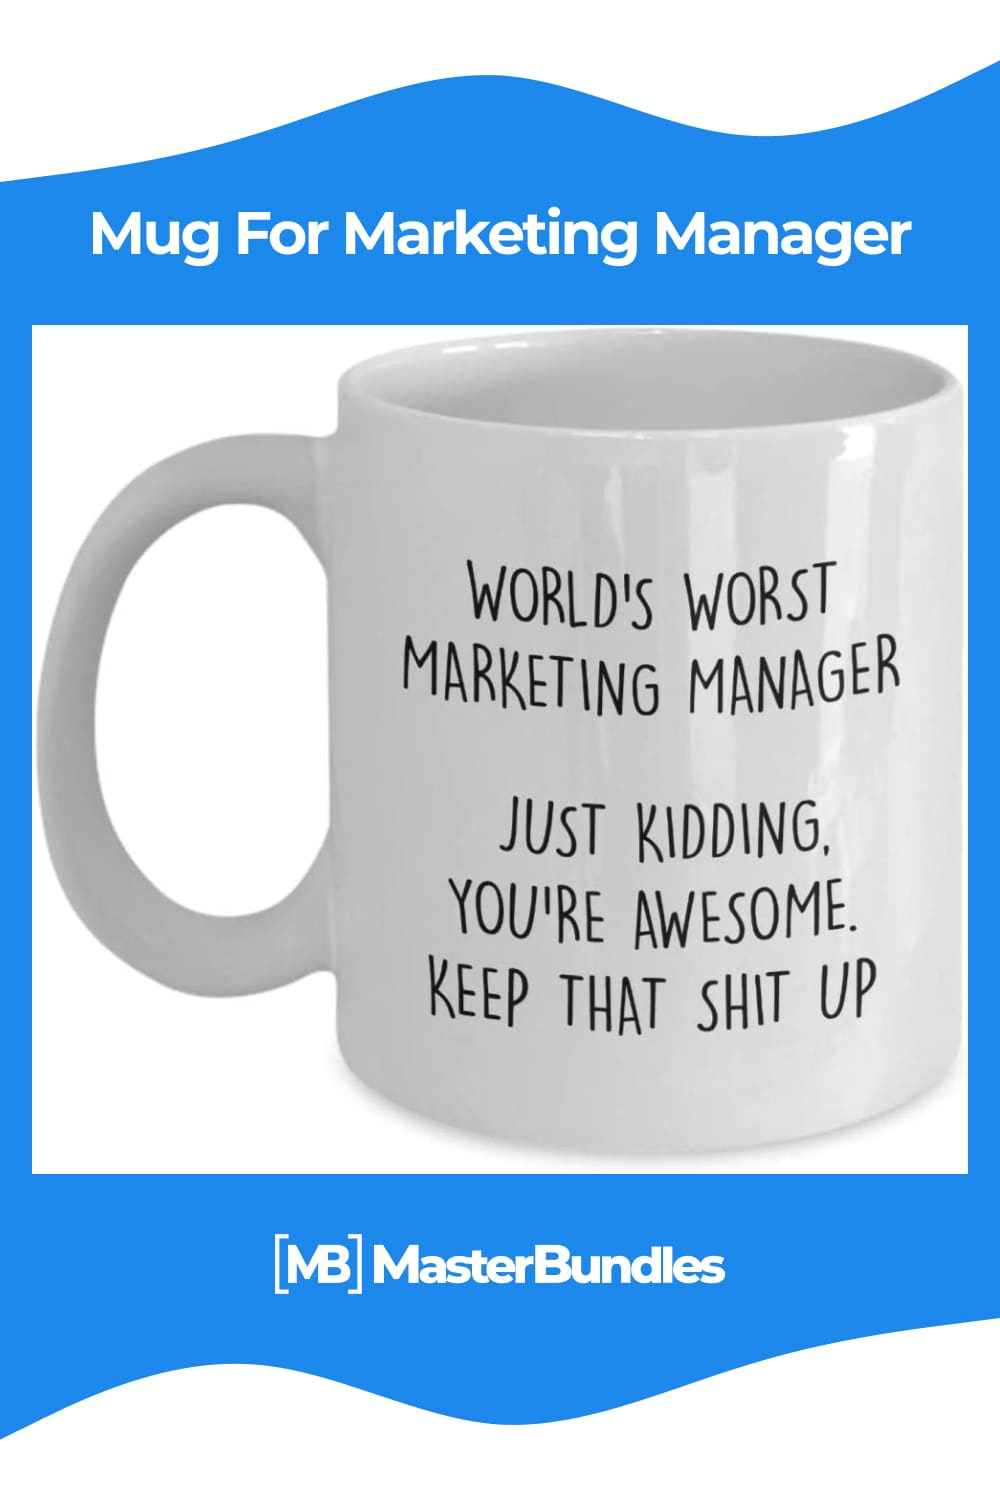 This mug will surely put a smile on anyone's face when they see it and everytime they use it.